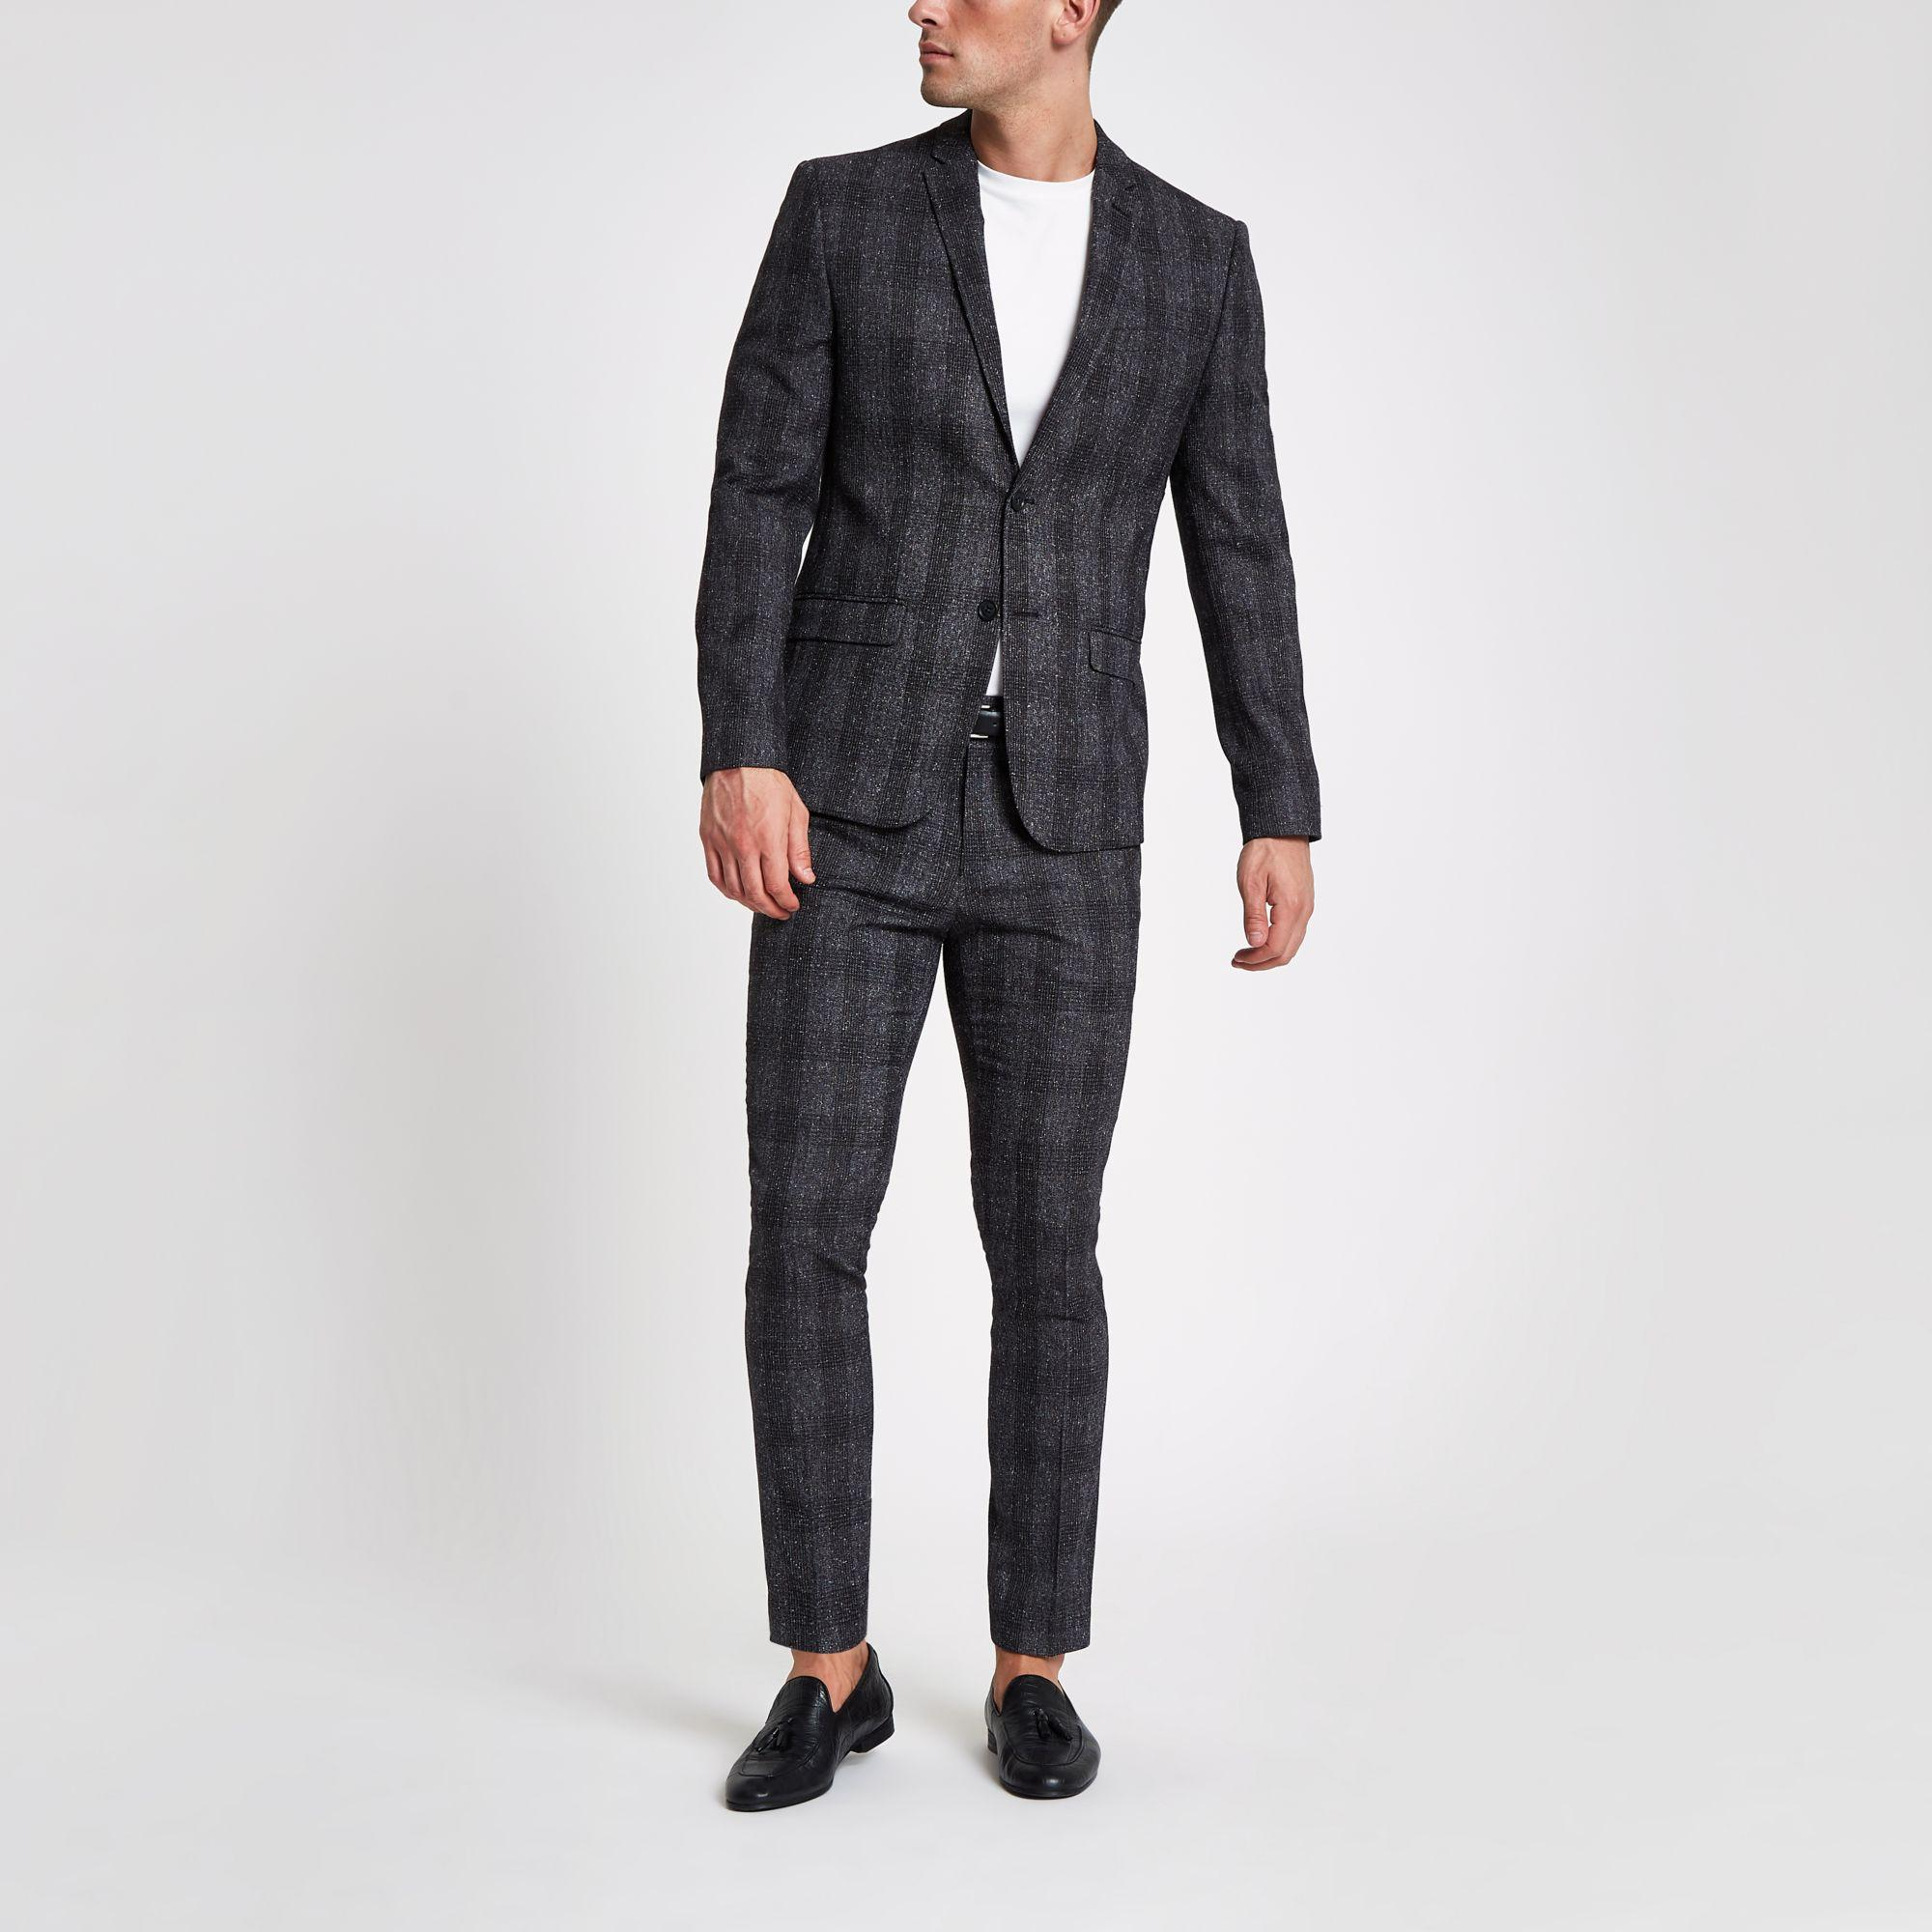 River Island Synthetic Check Skinny Suit Jacket in Grey (Grey) for Men